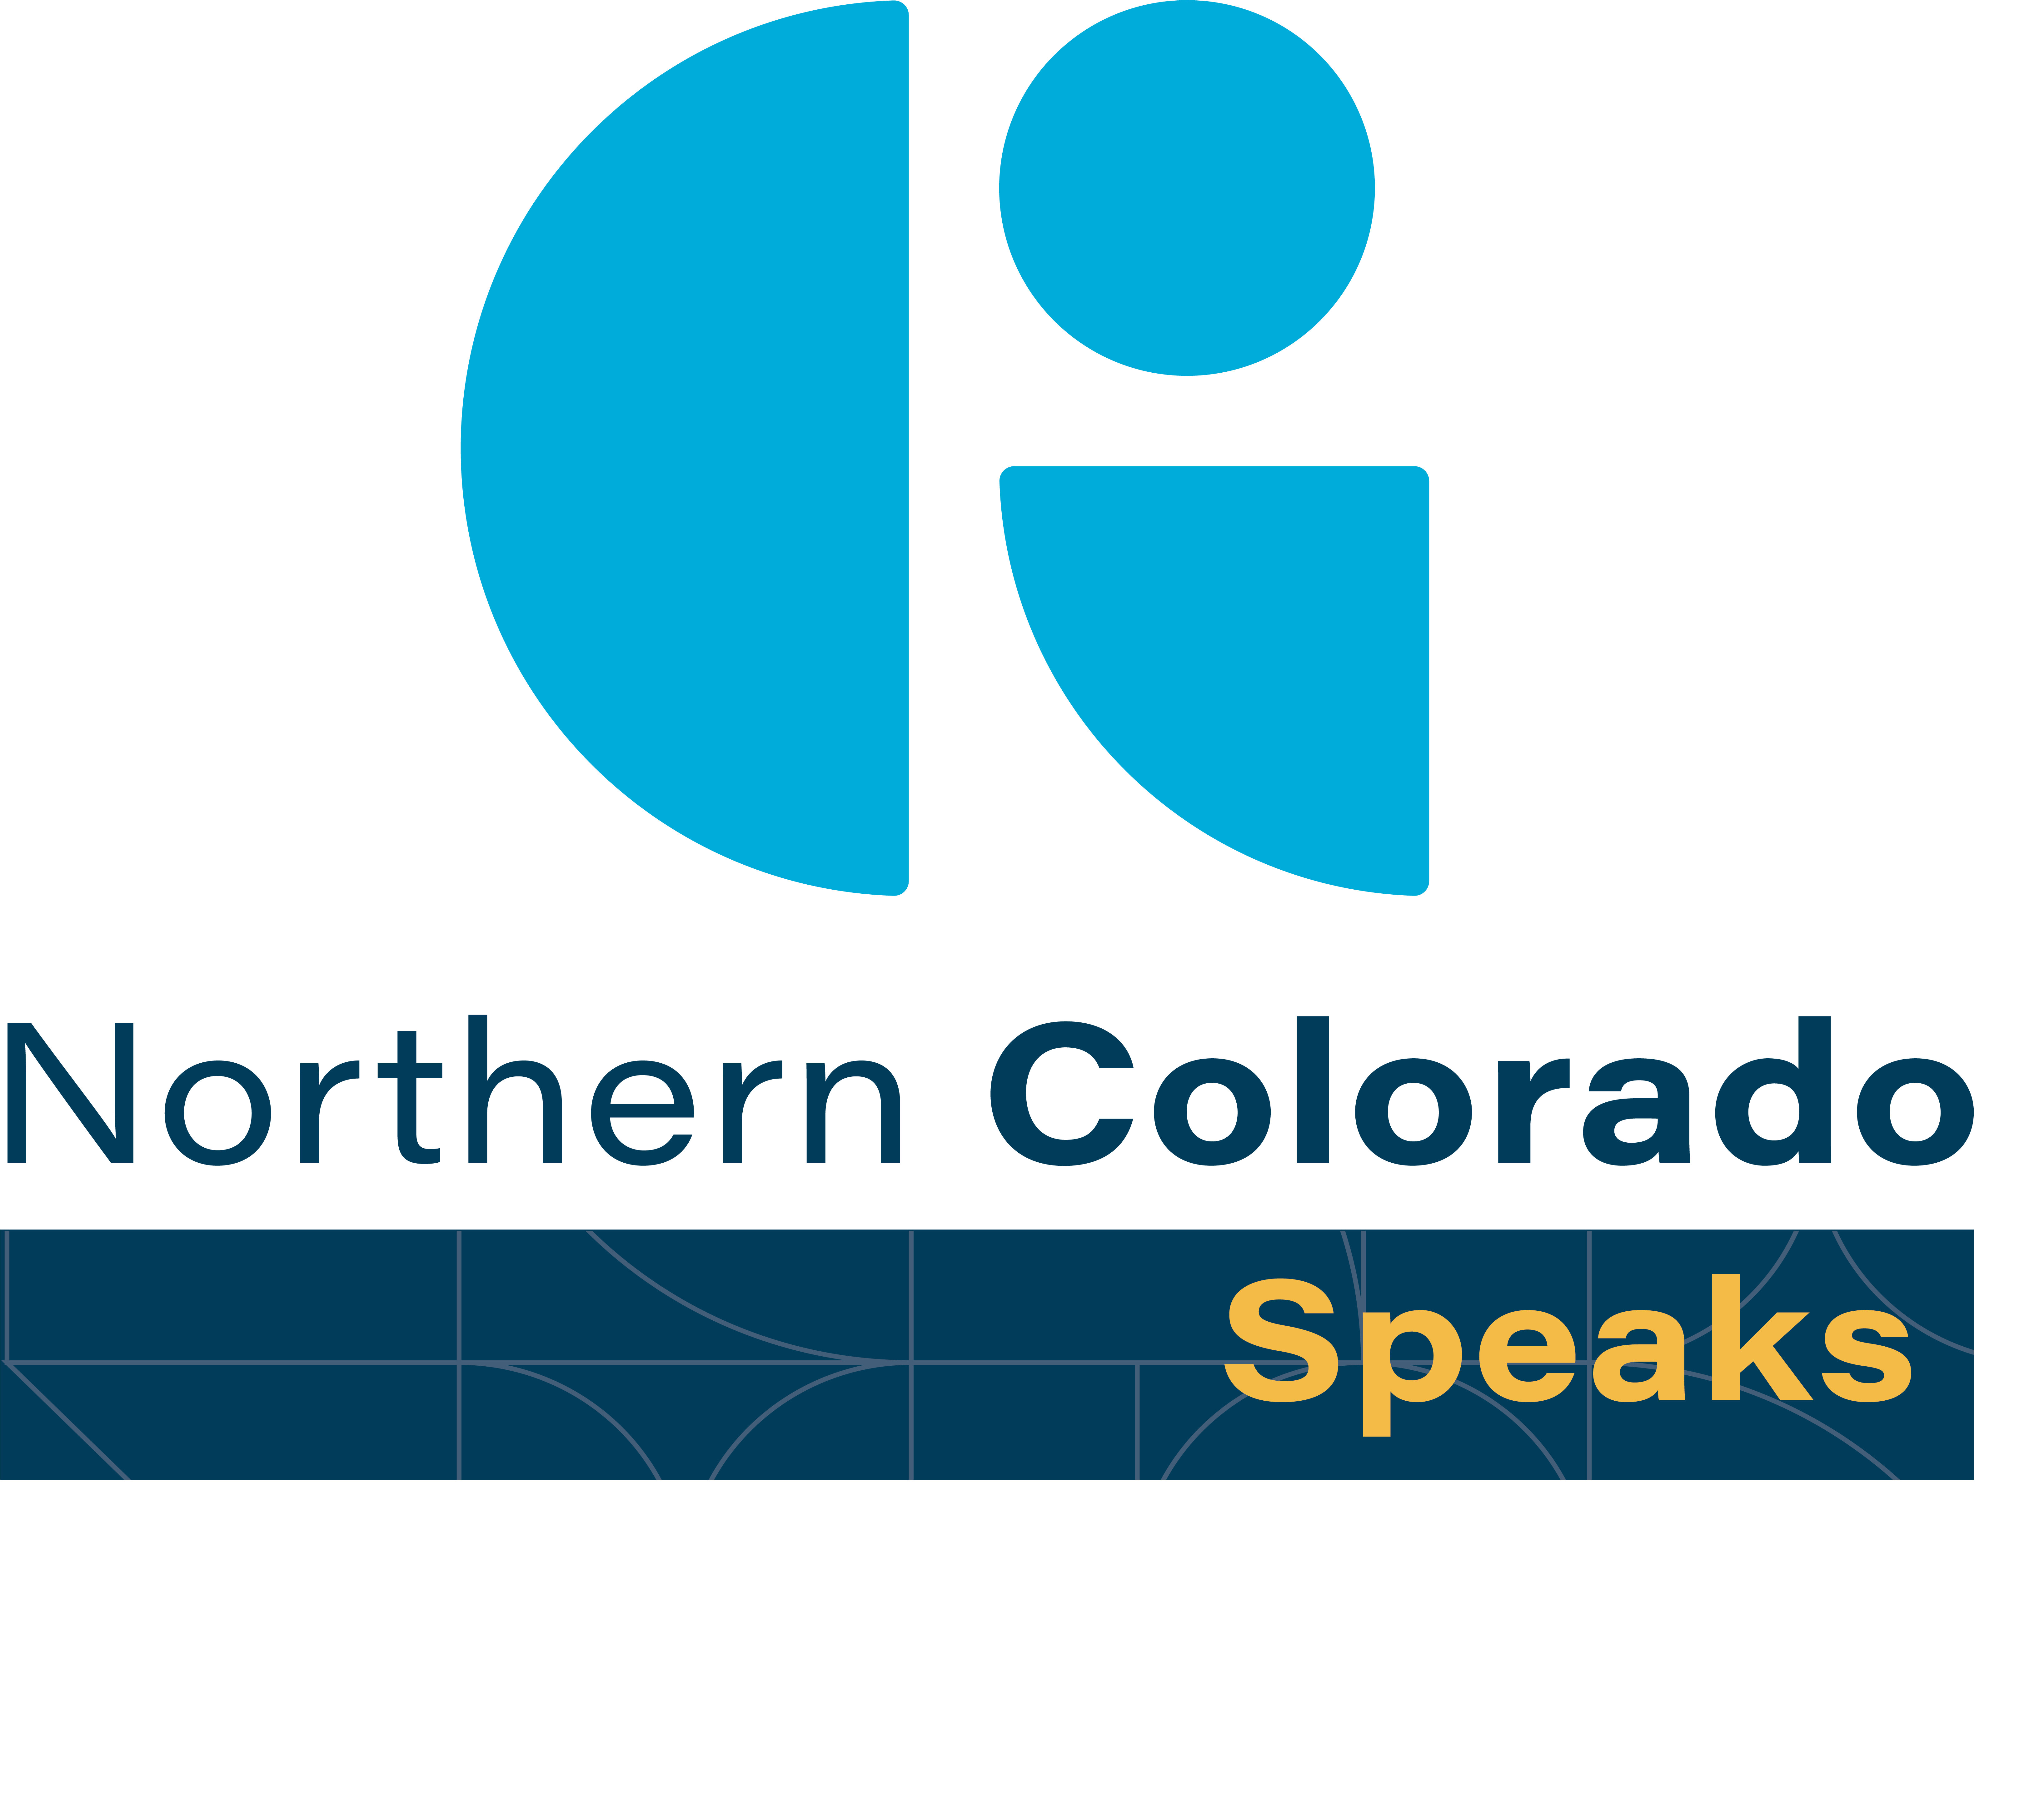 Norther Colorado Speaks